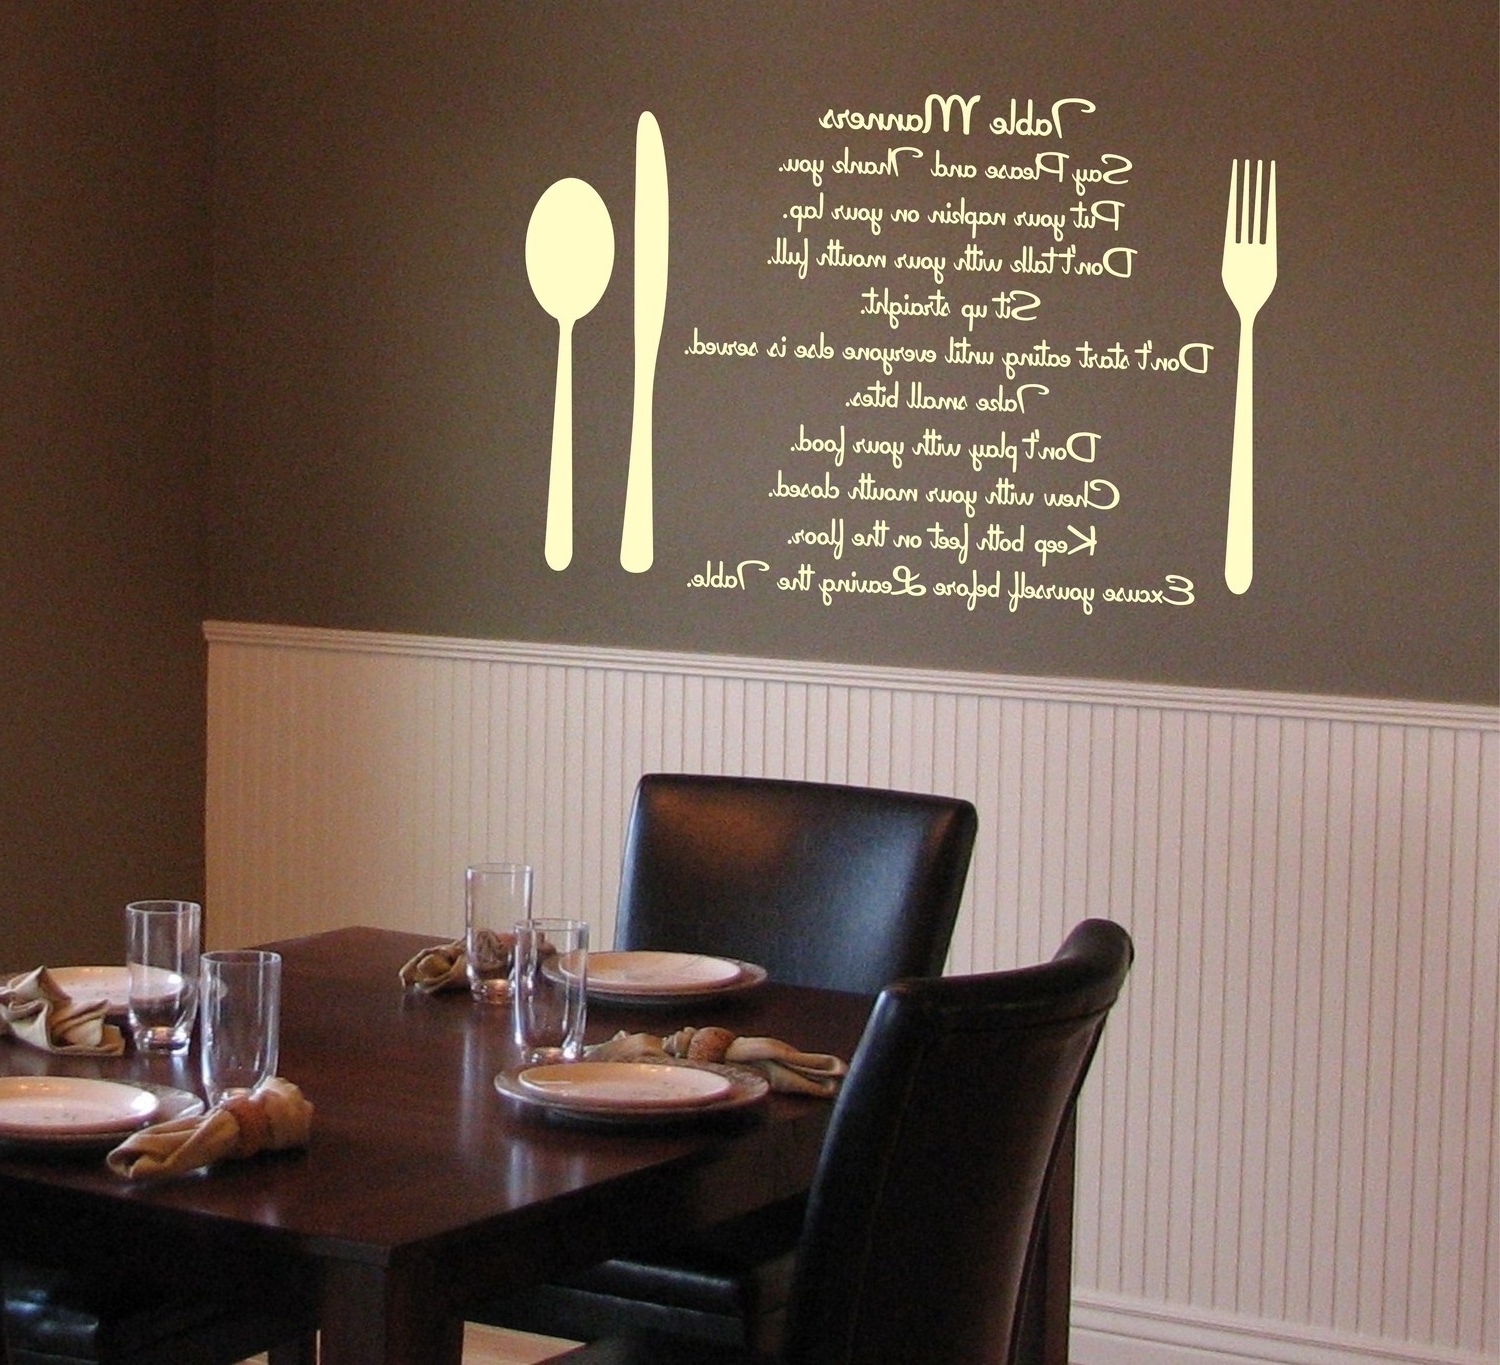 Wall Art For Dining Room With Most Recent Decorating Ideas For Nursing Home Rooms Fresh Wall Art Dining Room (View 13 of 15)